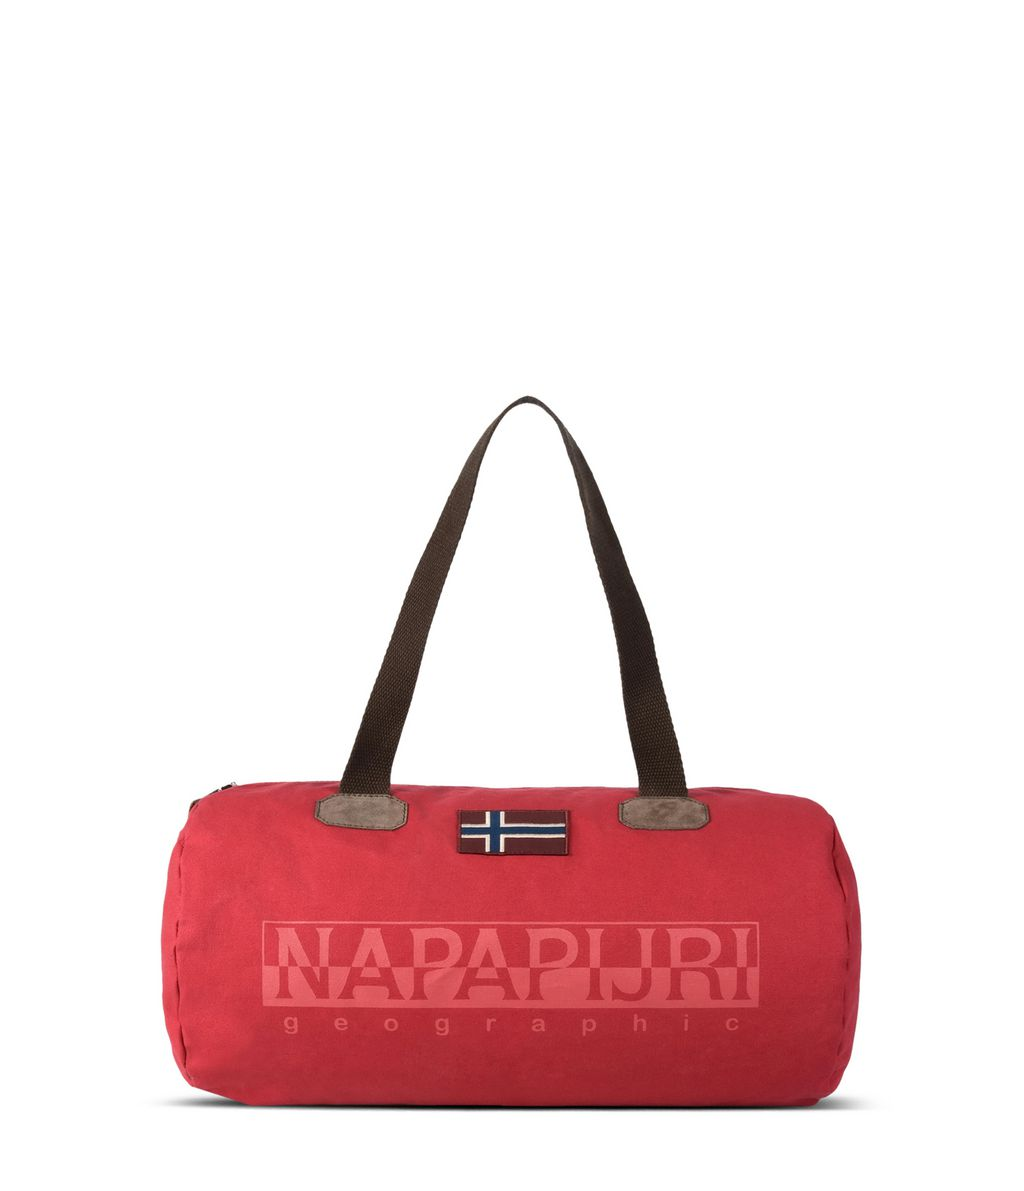 NAPAPIJRI BERING SMALL  TRAVEL BAG,CORAL